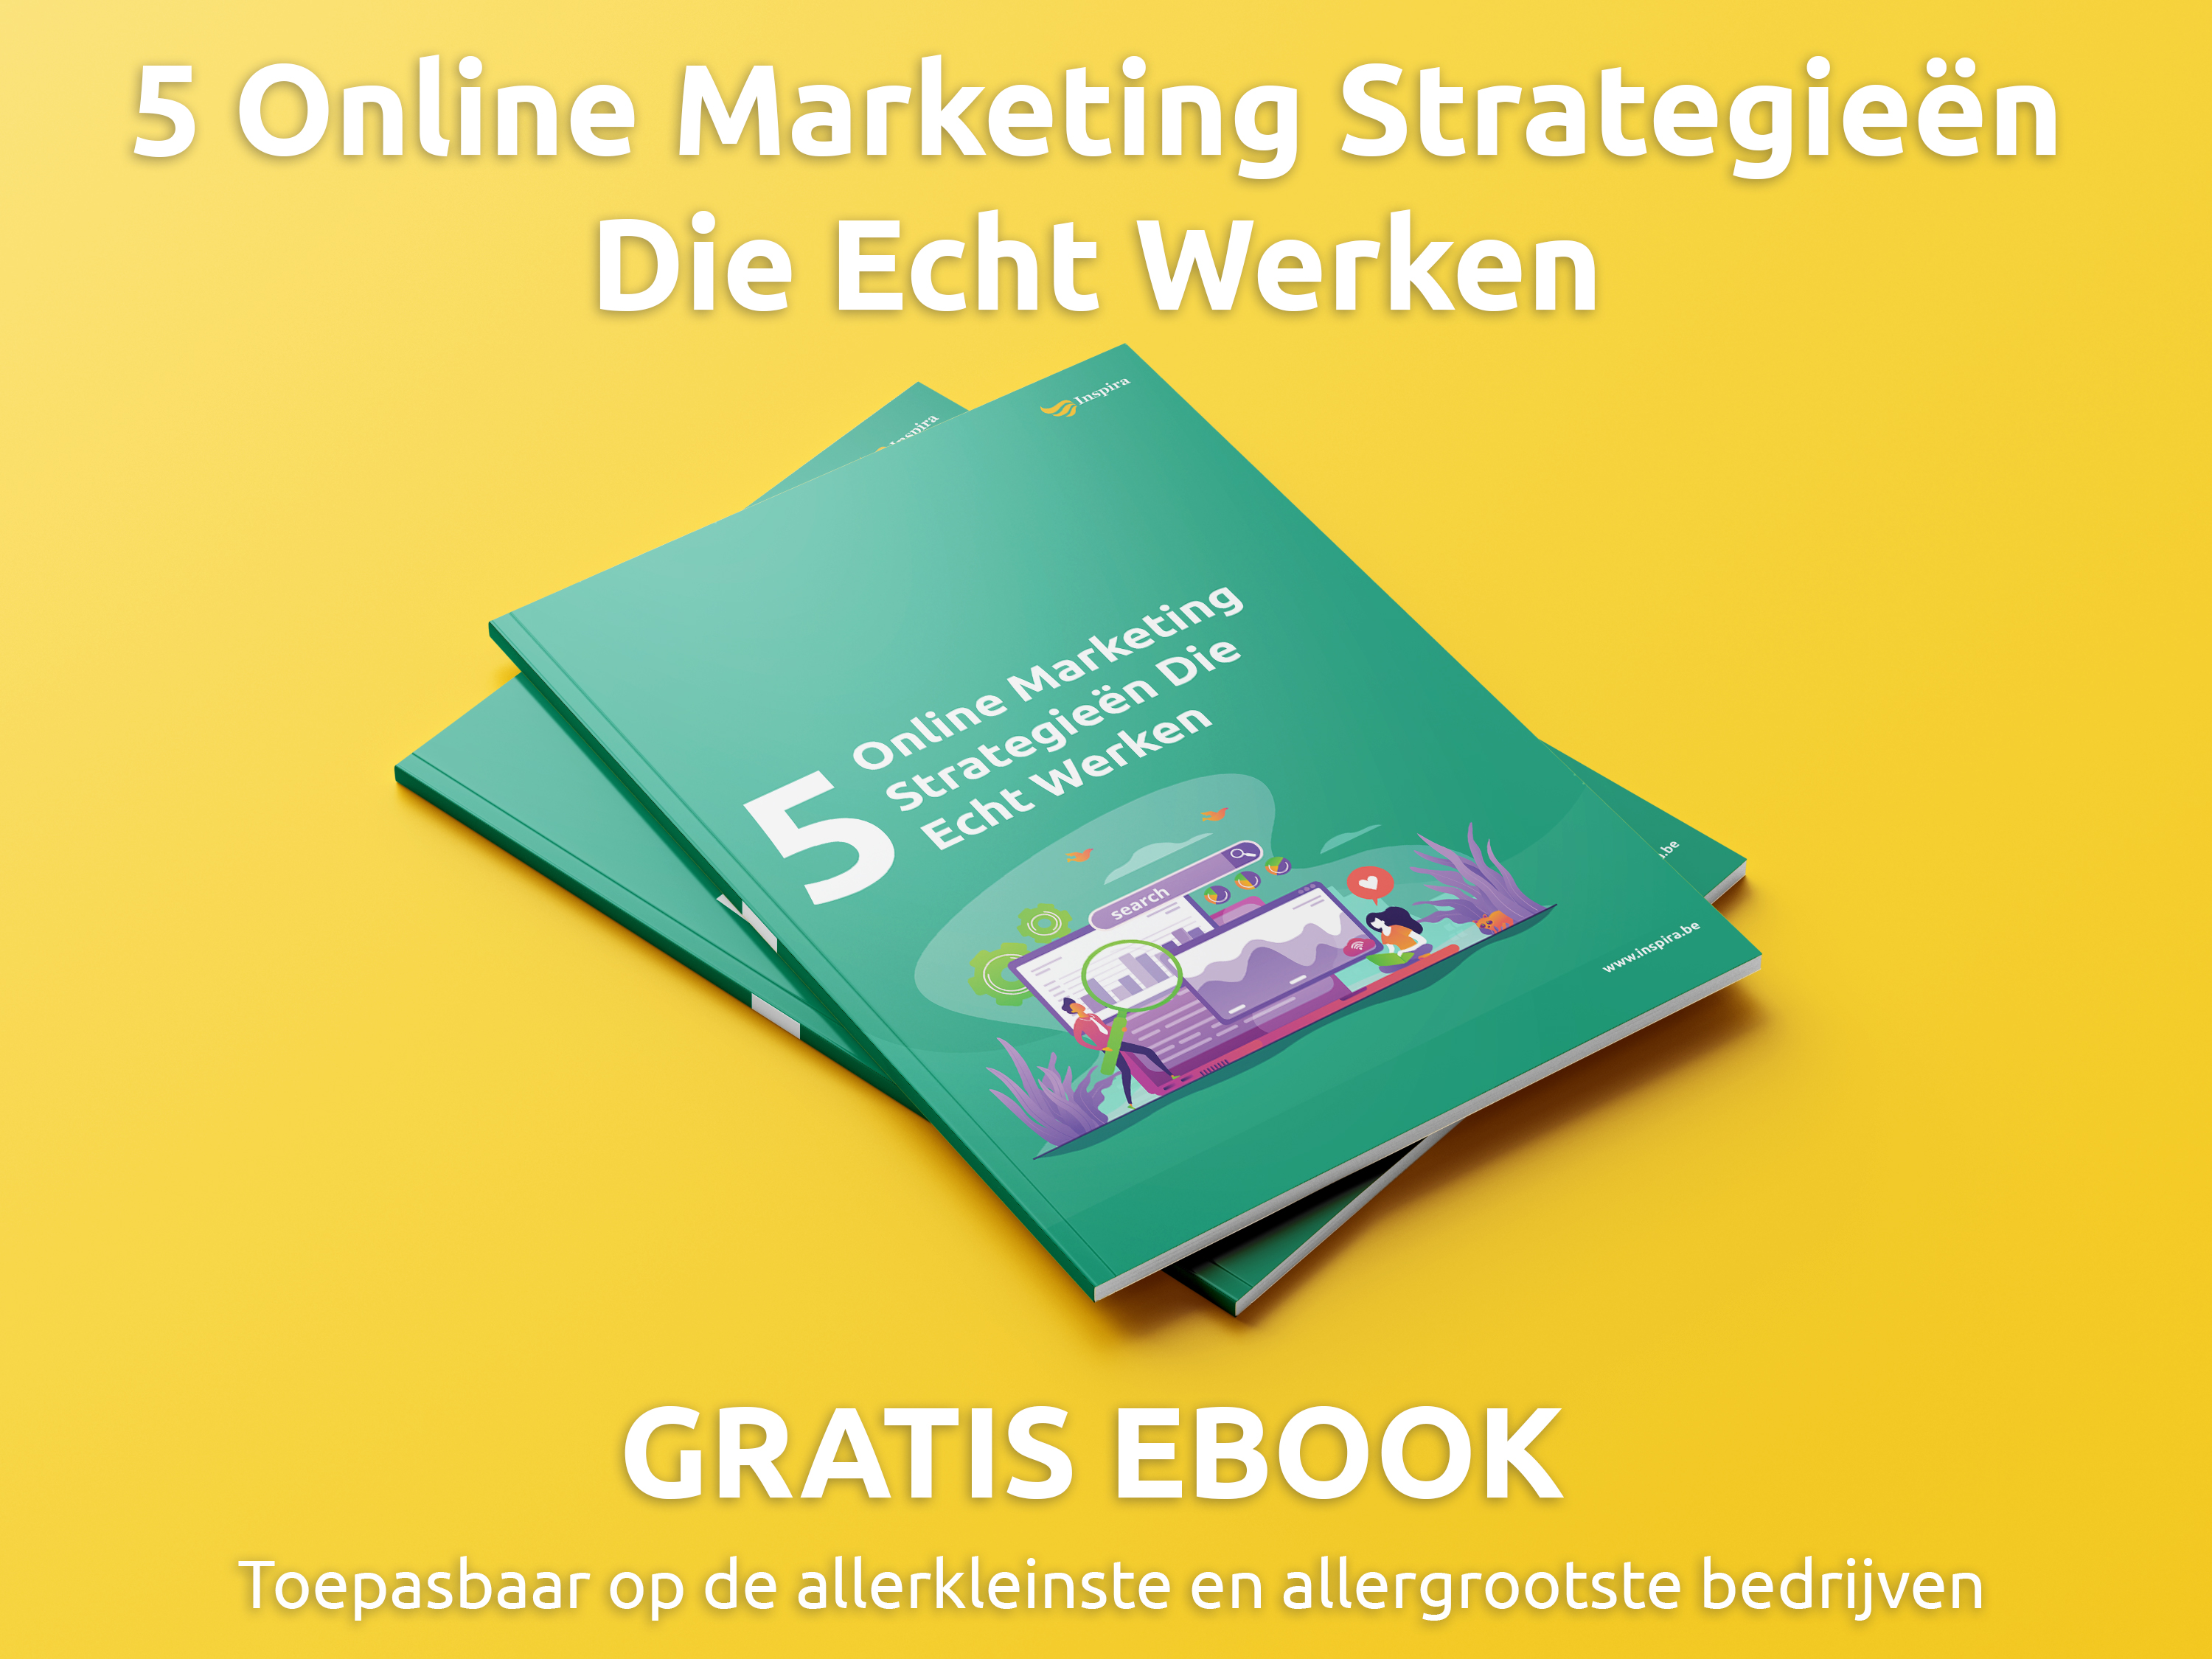 Gratis eBook: 5 Online Marketing Strategieën Die Echt werken